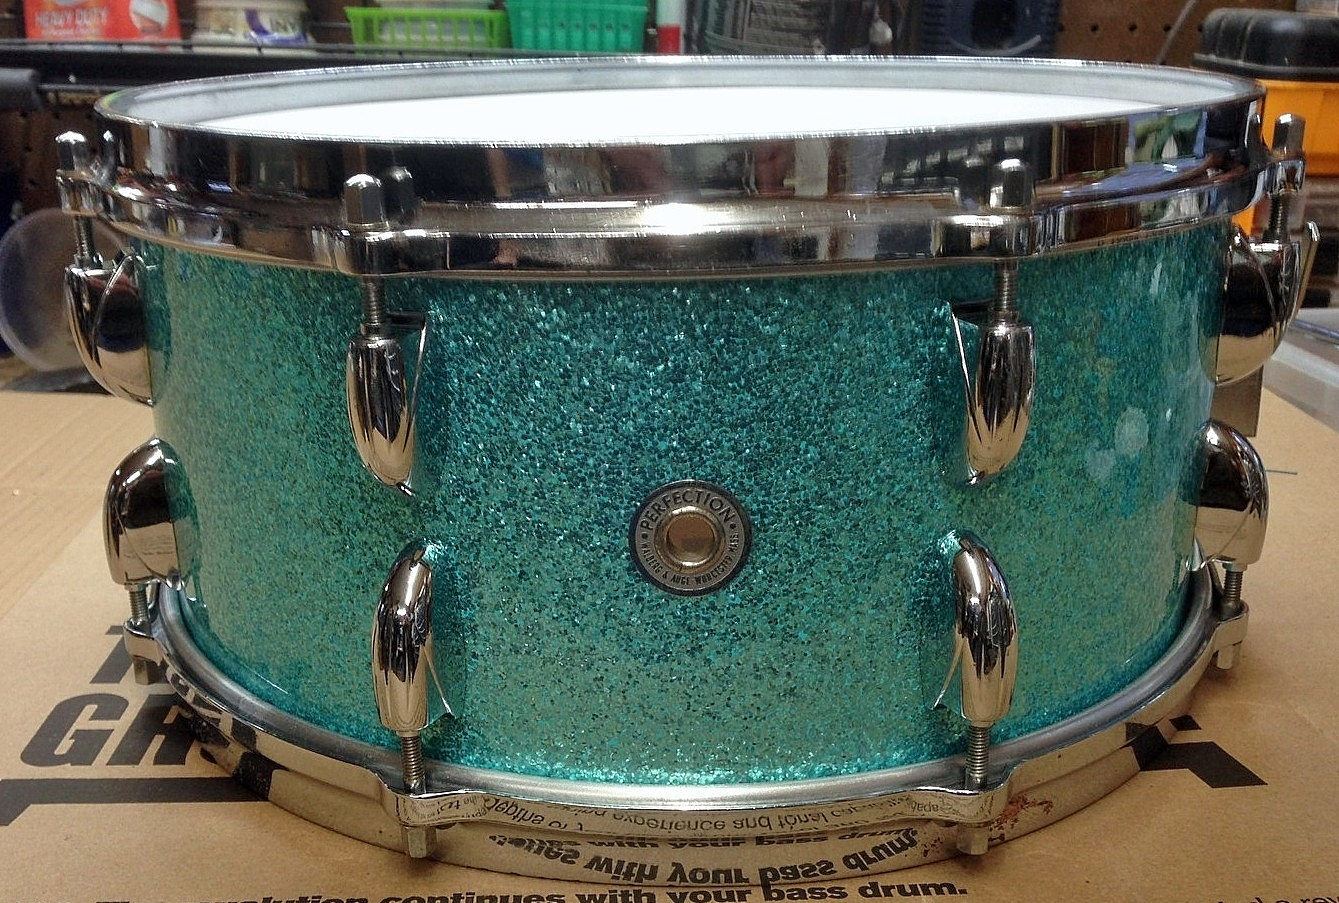 1962 Walberg and Auge Snare Drum Turquoise Sparkle.jpg